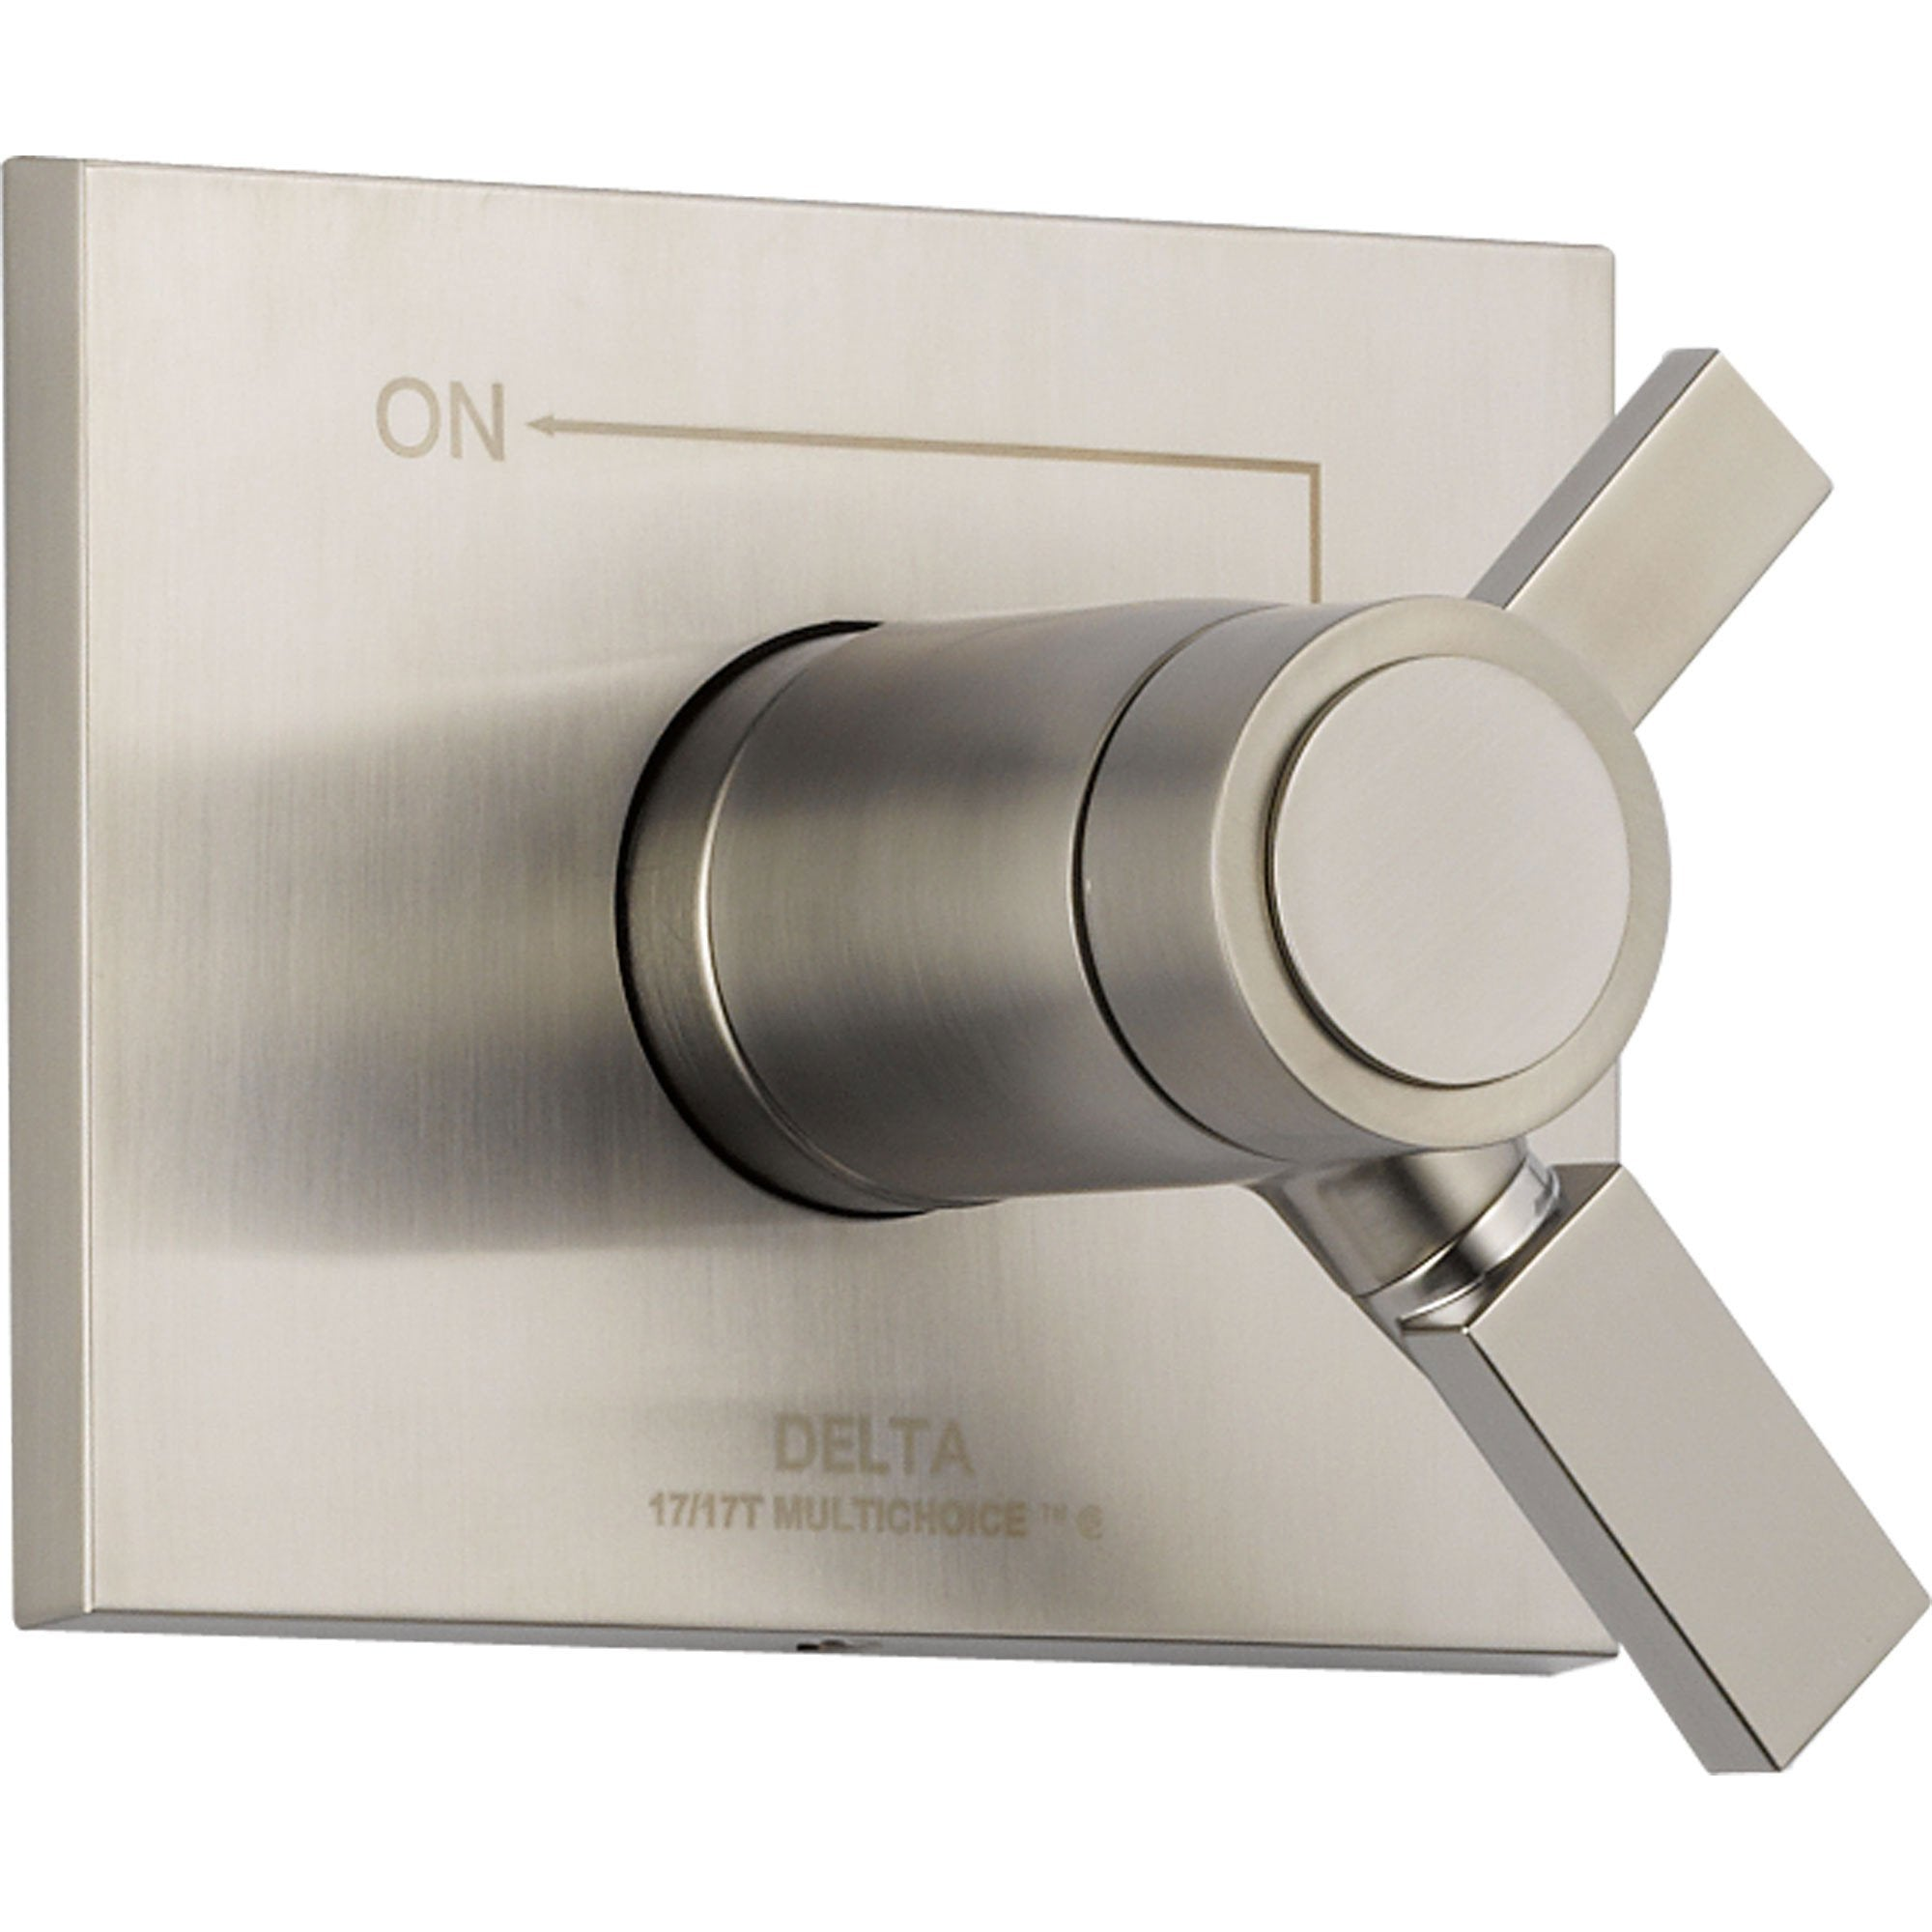 Delta Vero Stainless Steel Thermostatic Shower Dual Control with Valve D1022V